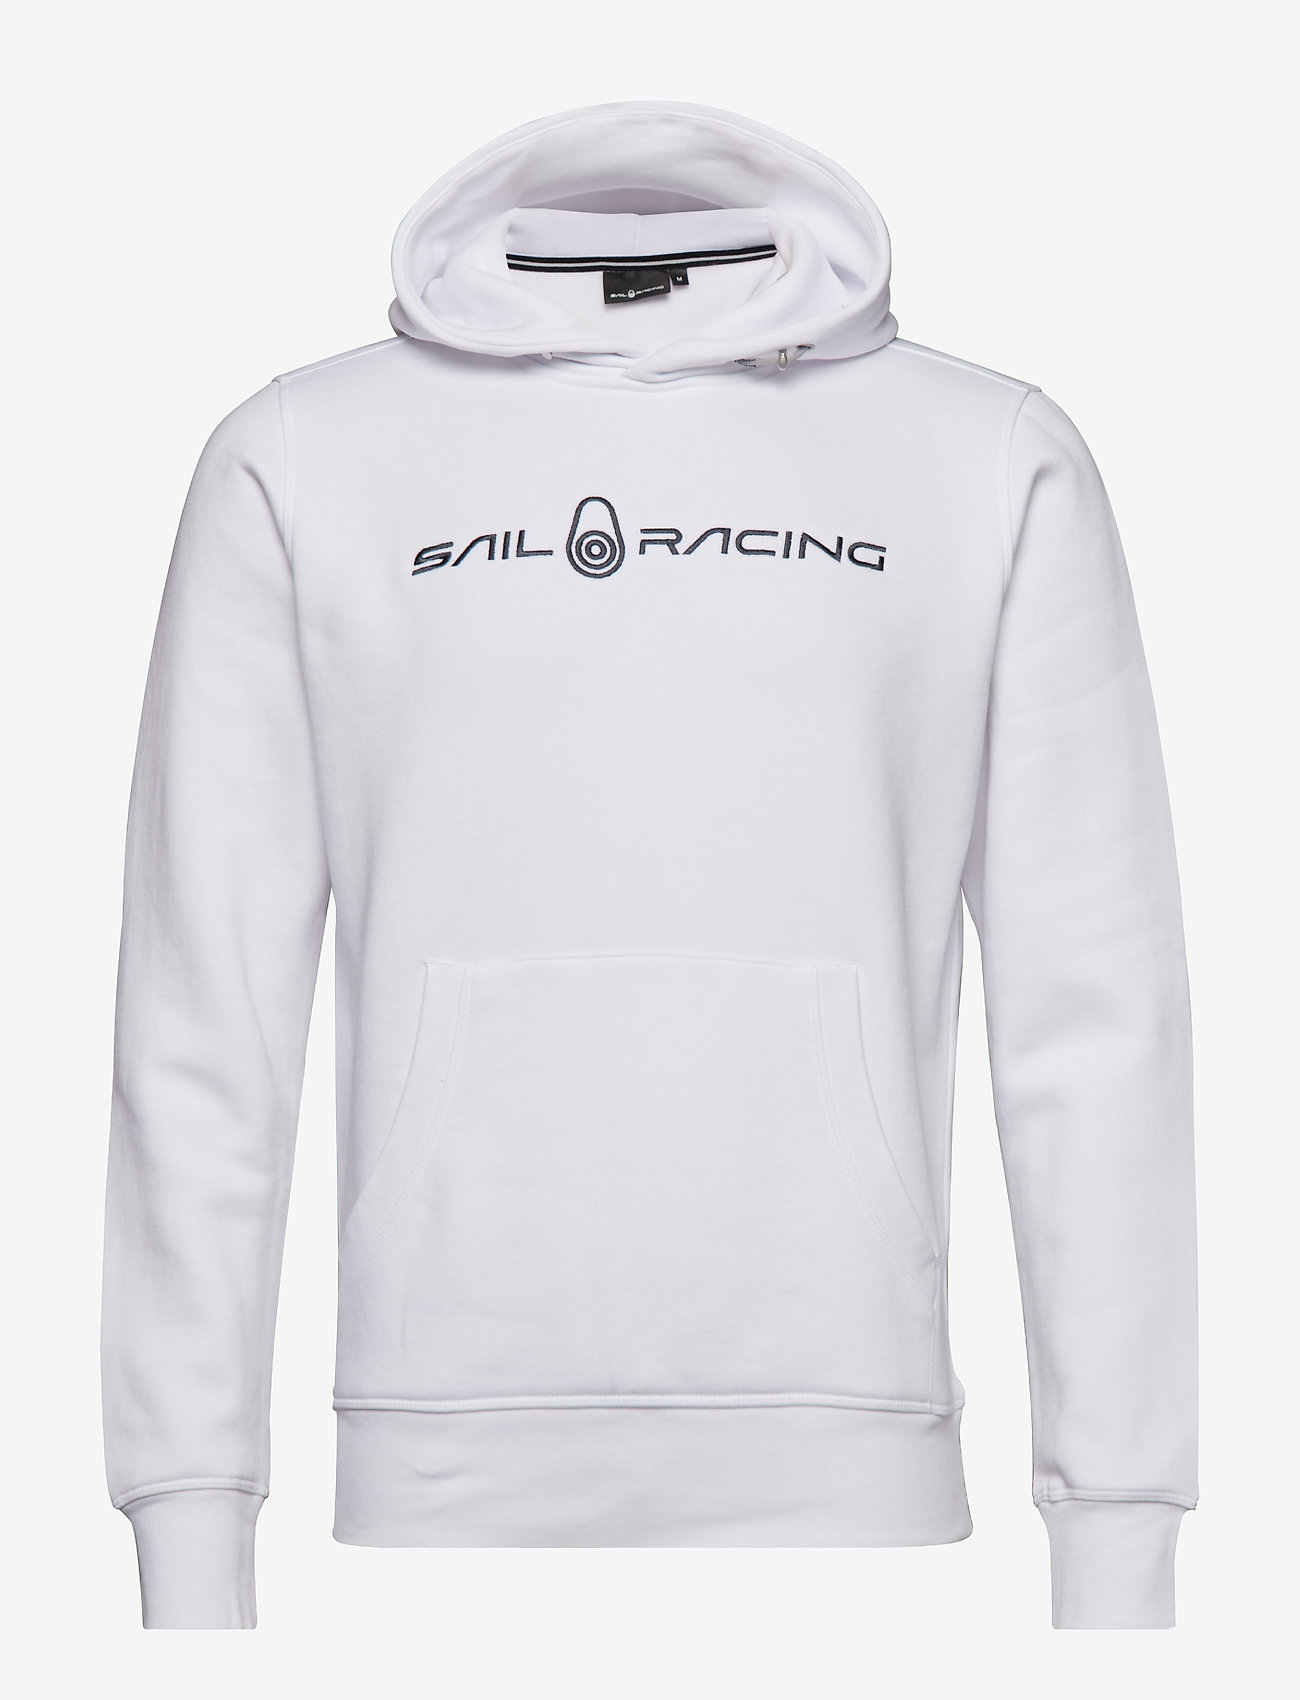 Sail Racing - BOWMAN HOOD - hoodies - white - 0